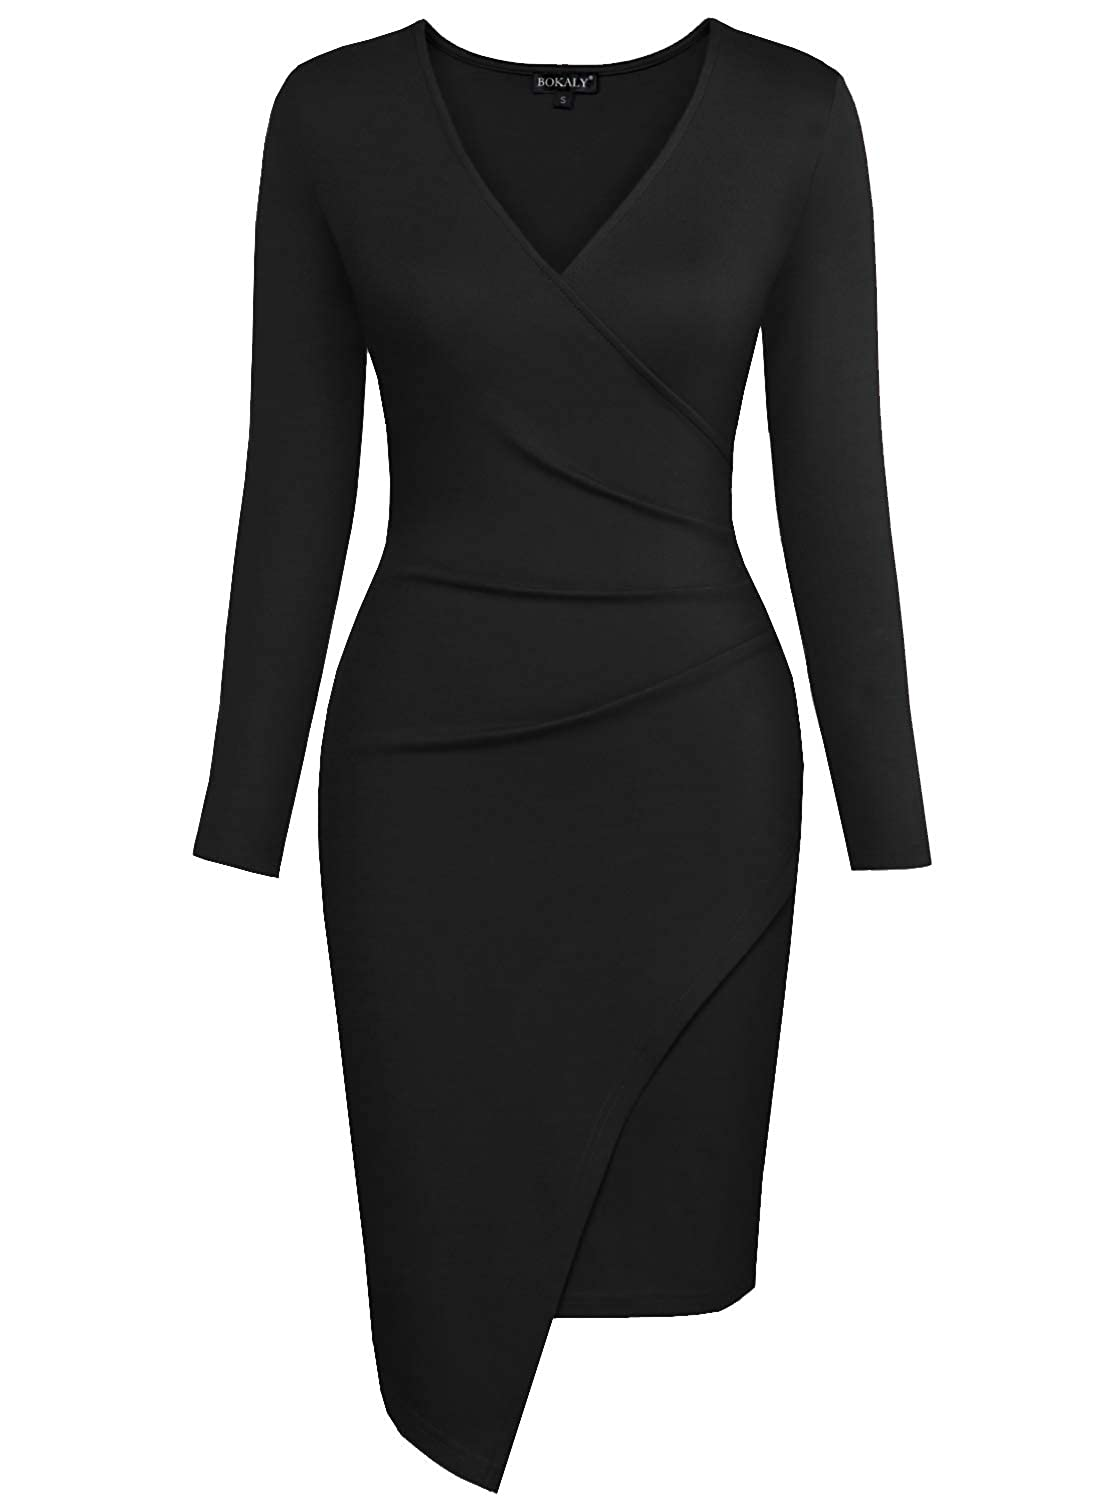 5053f6a36f3ef BOKALY Women Bodycon Dress Party Casual V Neck Ruched Wrap Pencil Cocktail  Dresses 258